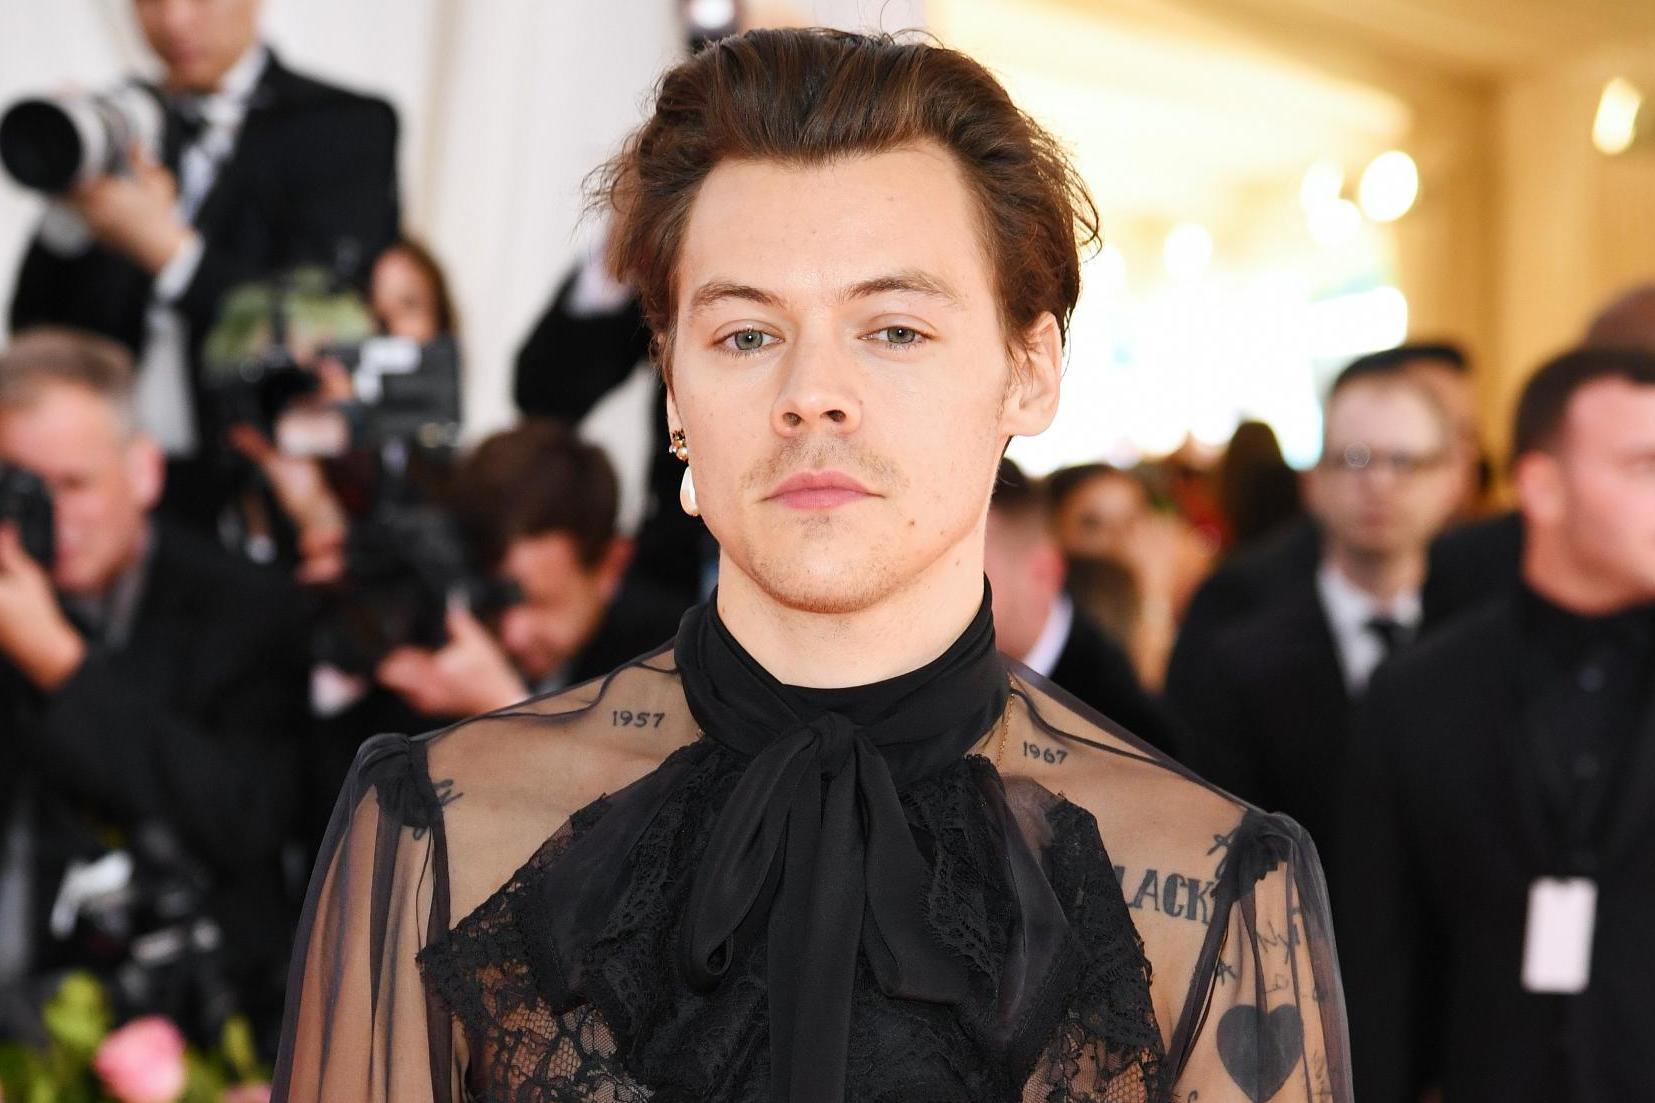 Met Gala 2019 Harry Styles Wears Earring And Heeled Shoes On Red Carpet The Independent